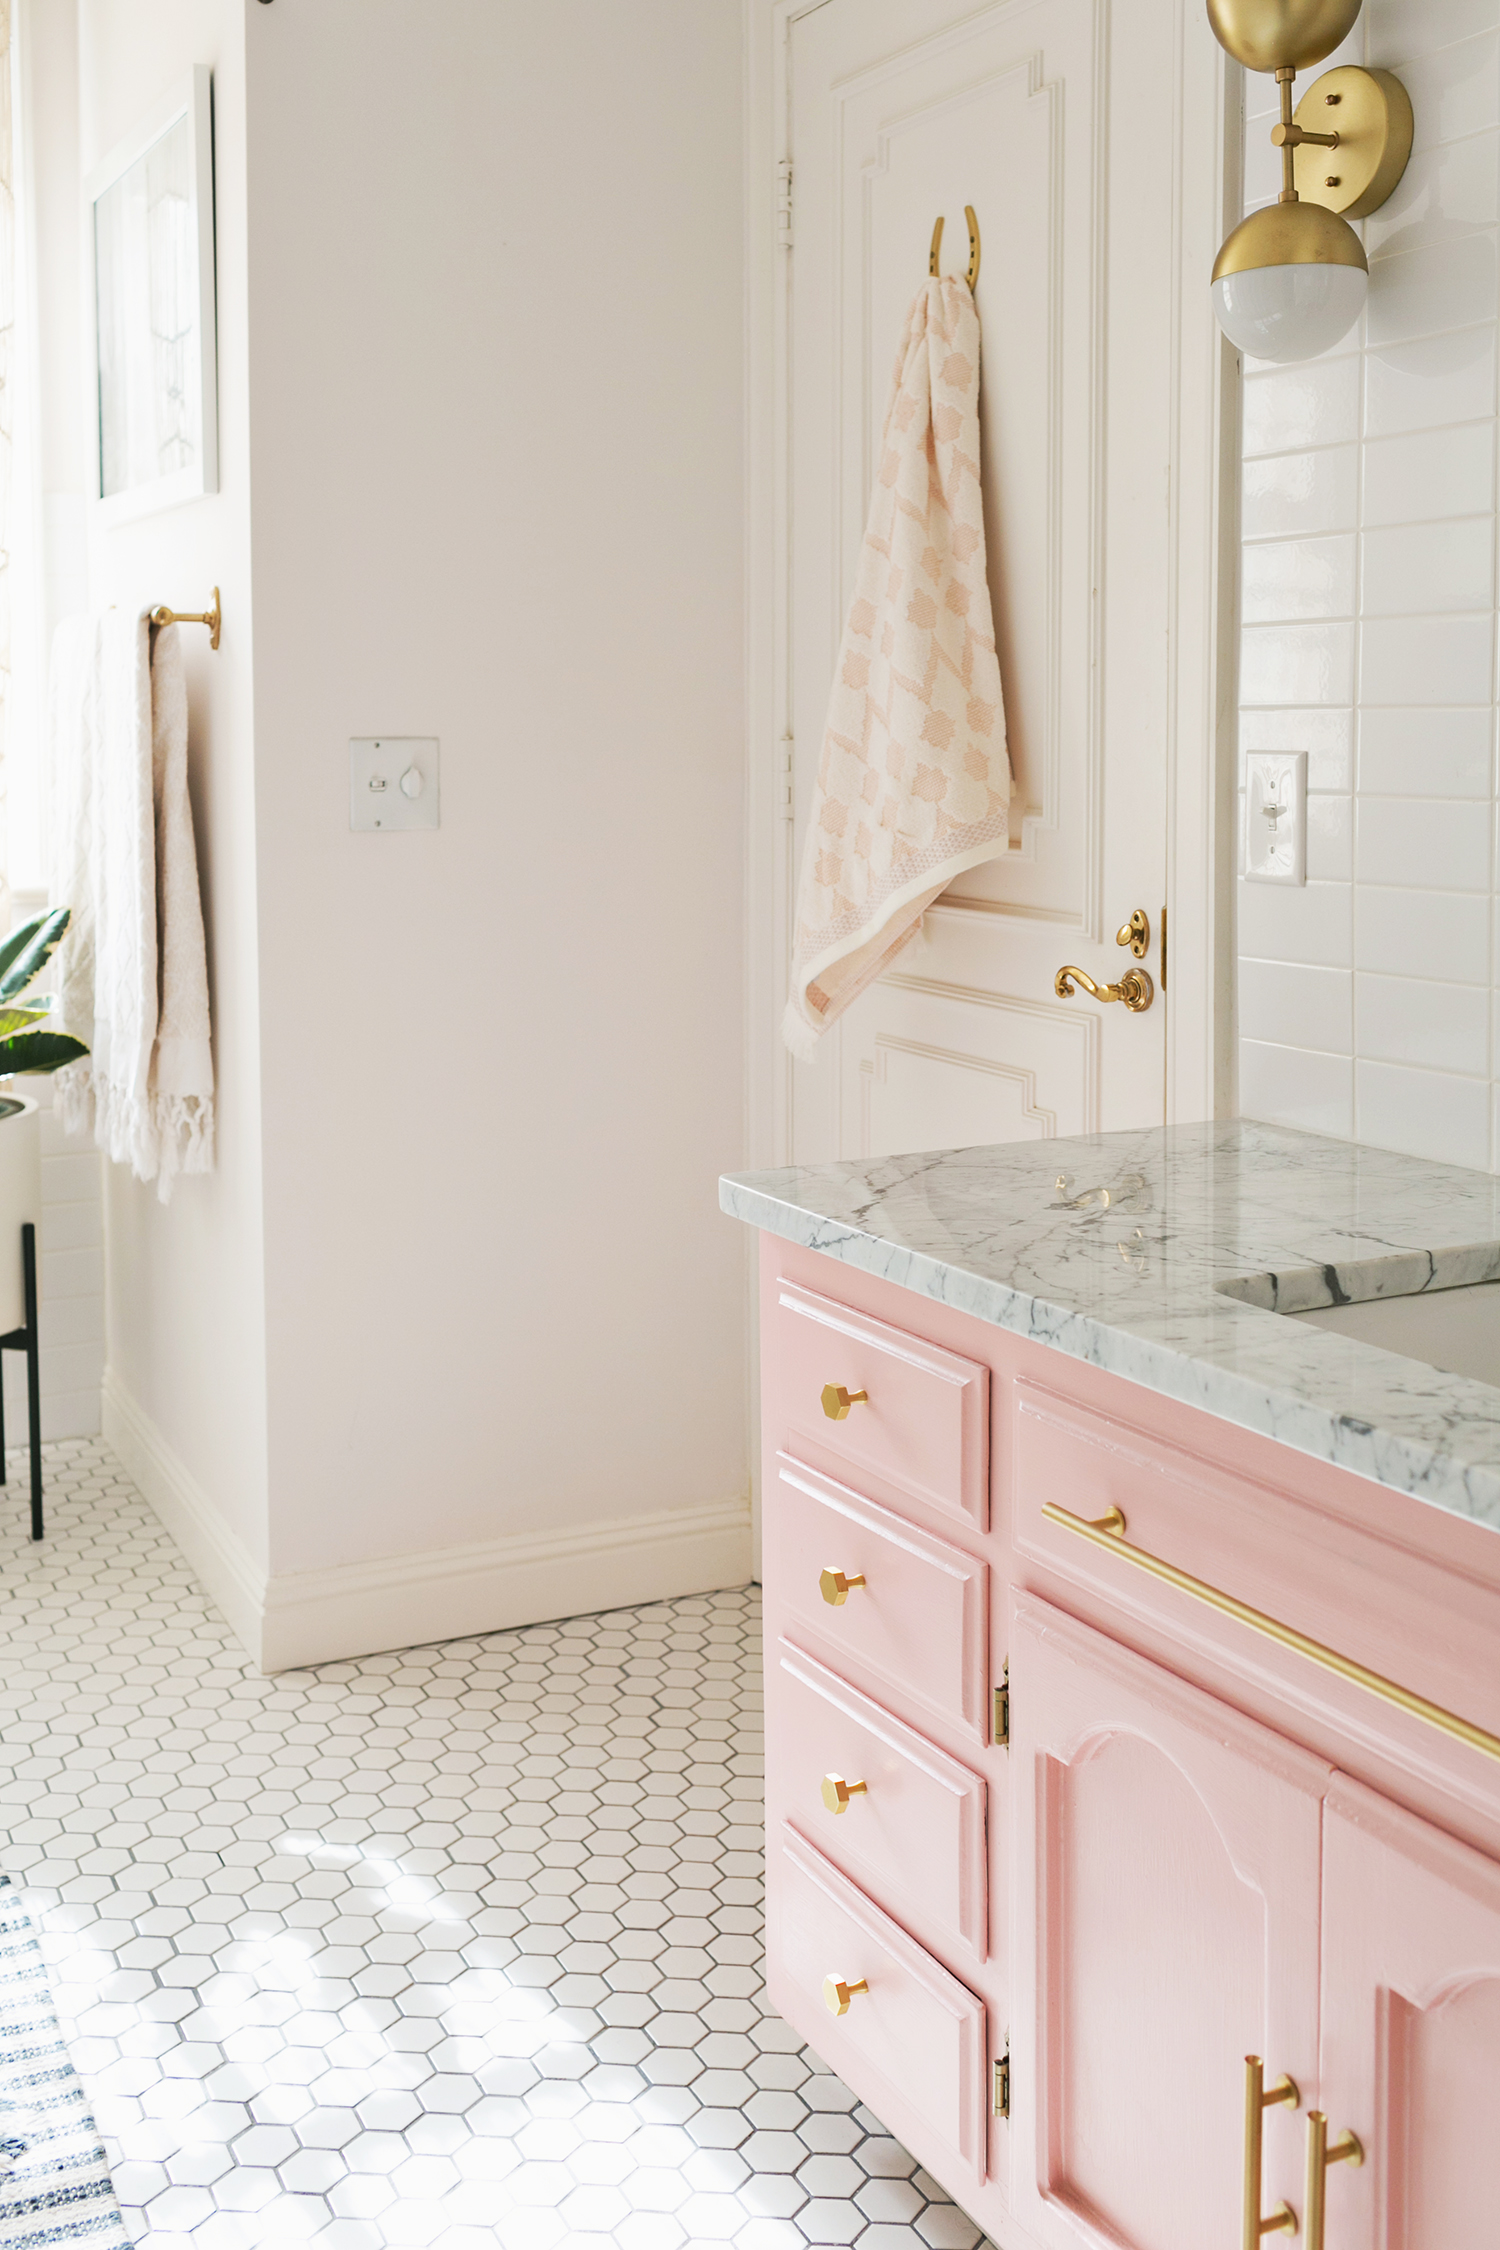 1 | Millennial Pink - This girly bathroom makeover has us drooling! Click on the image to see more before and after photos.